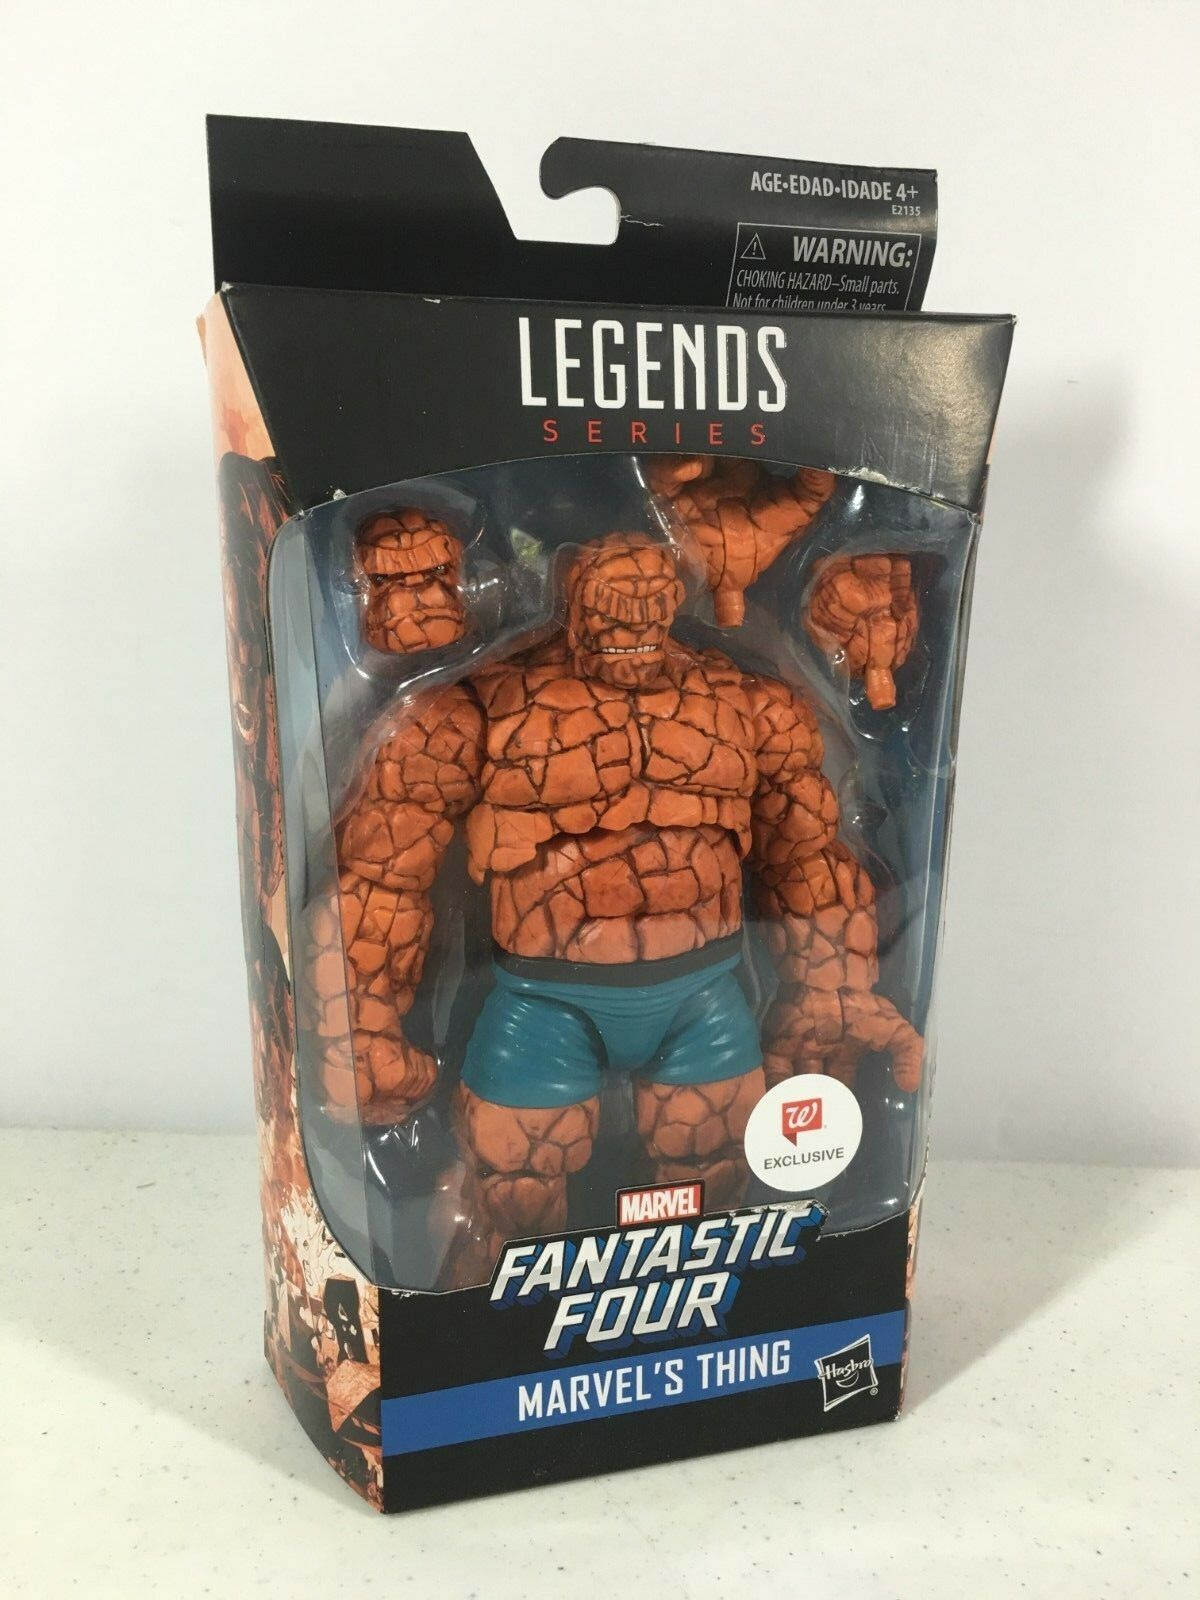 Marvel Legends The Thing Fantastic Four Walverdes Exclusive In Hand Hasbro